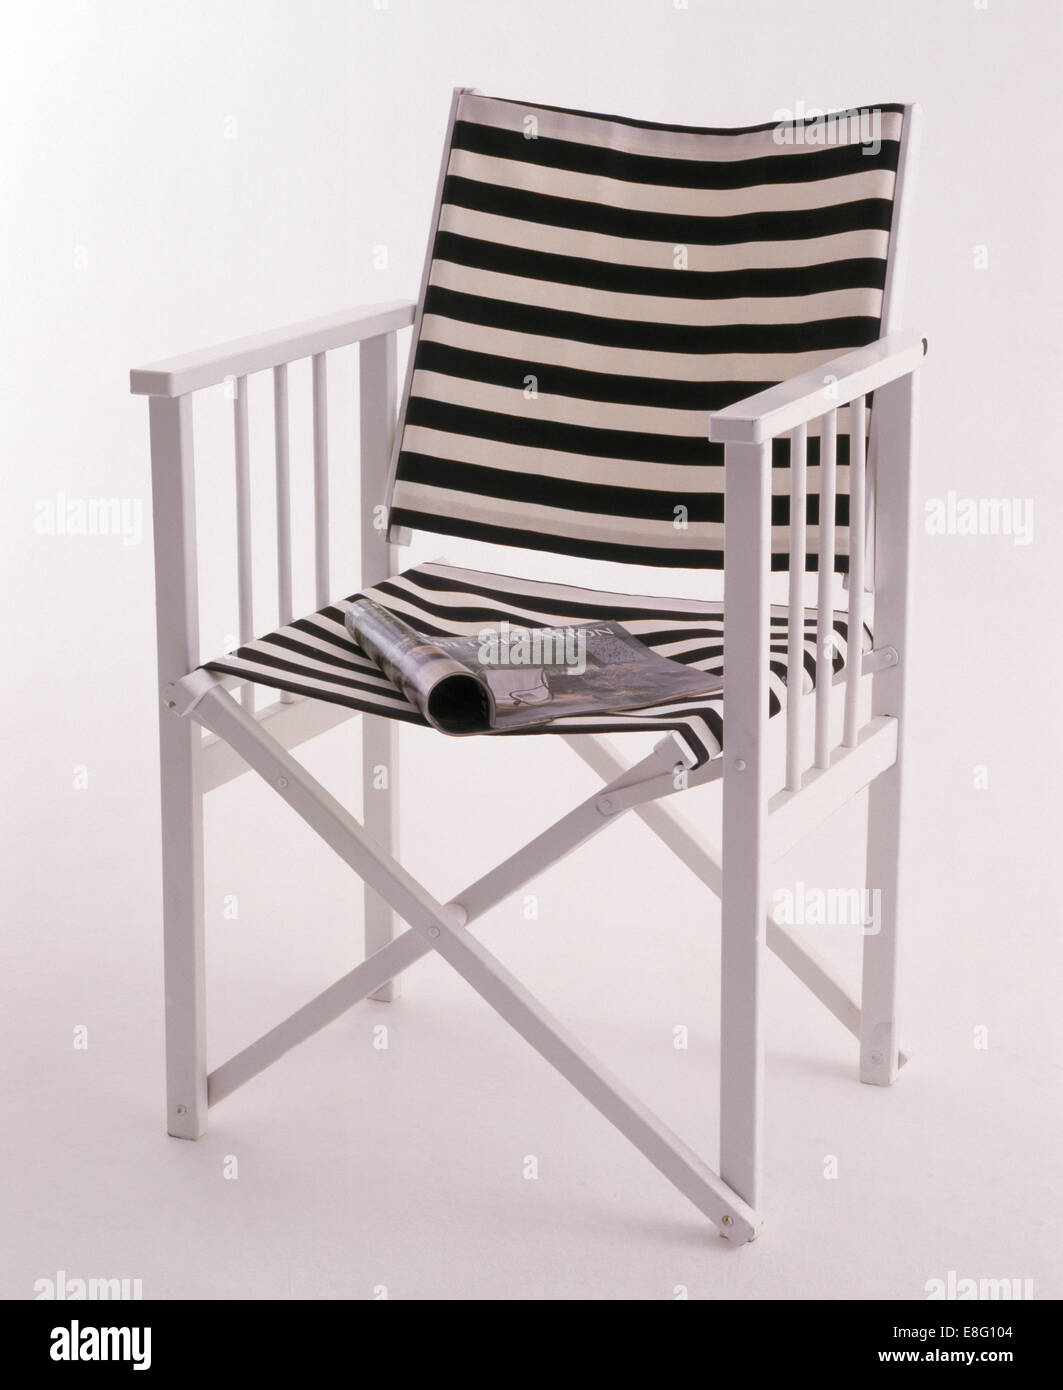 Directoru0027s Chair With Black+white Striped Canvas Back And Seat